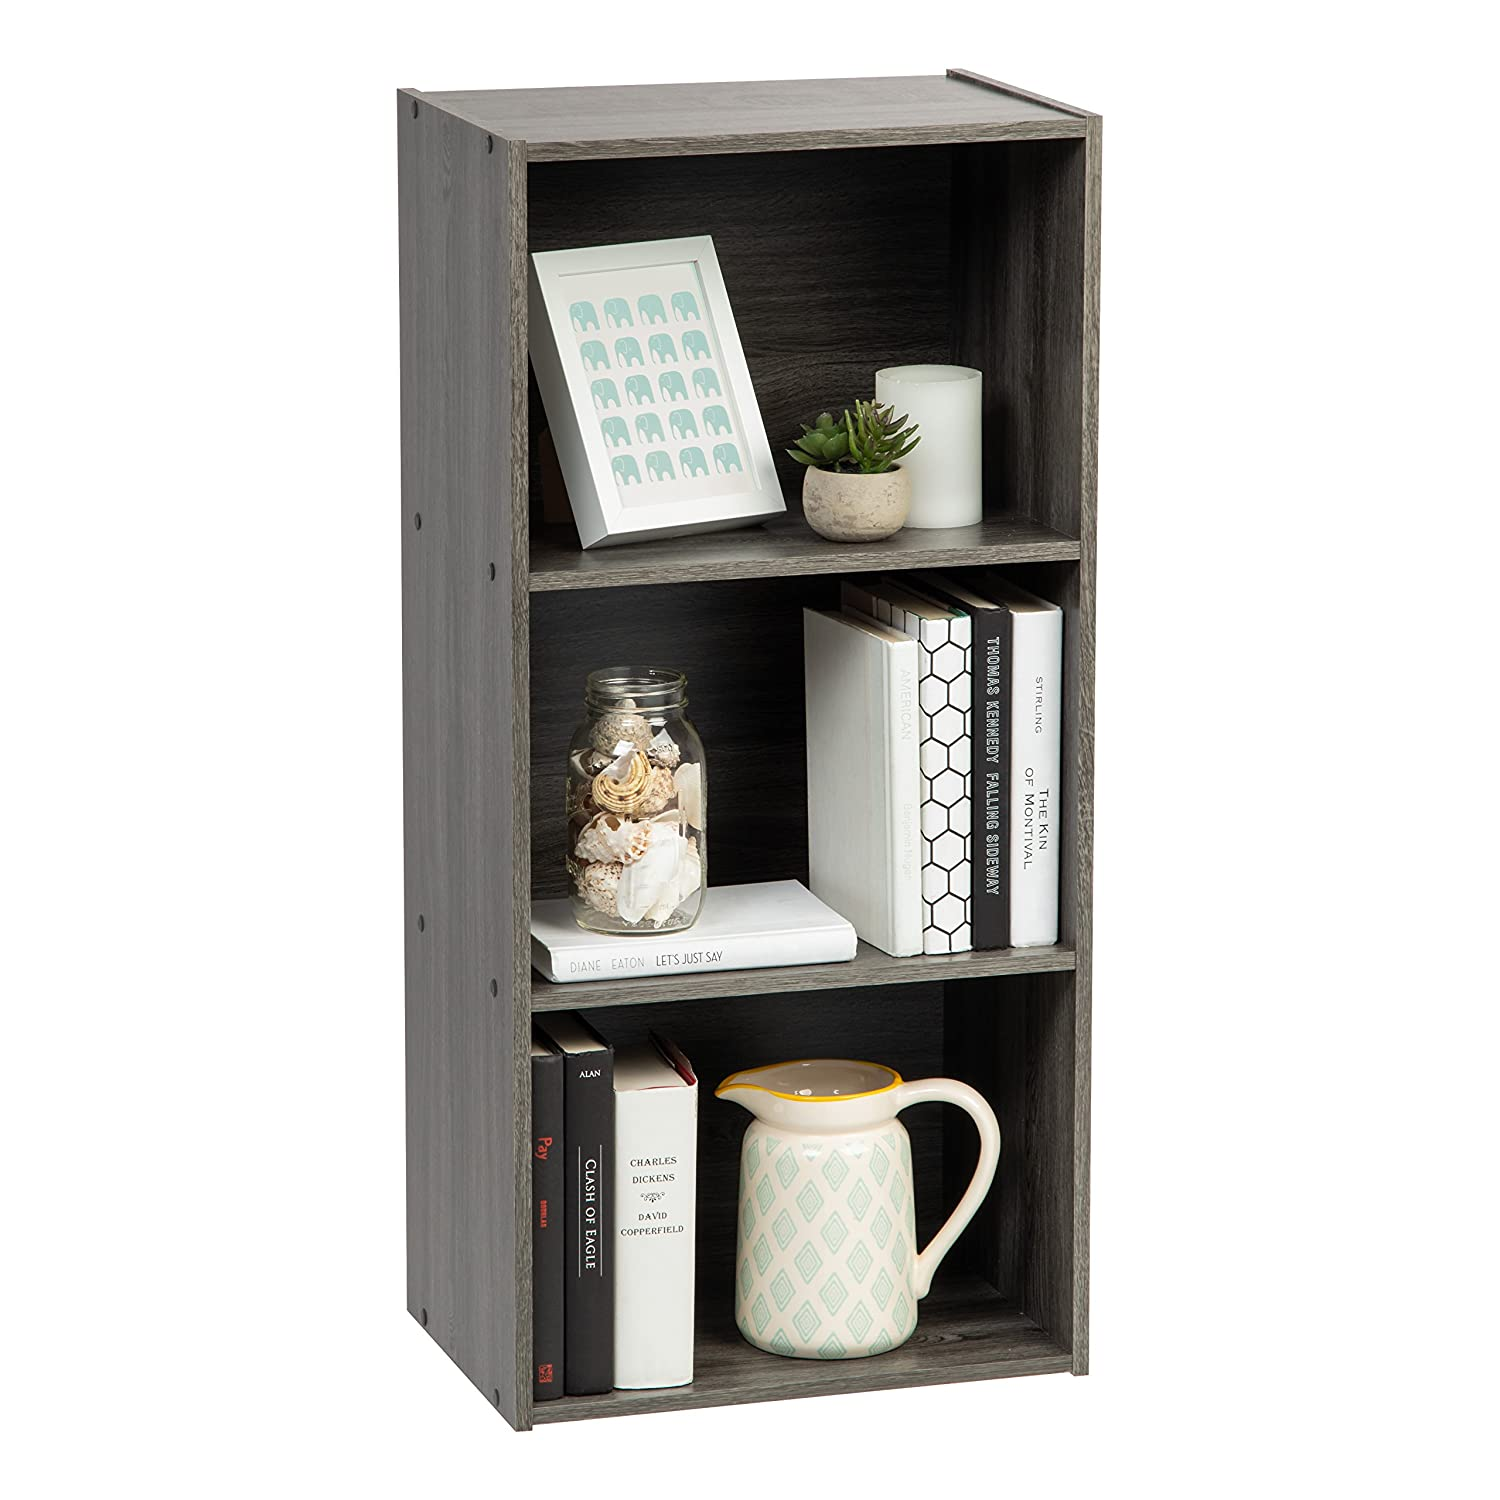 IRIS USA, Inc. 596333 TSB-3 3-Tier Wood Storage Shelf, Gray